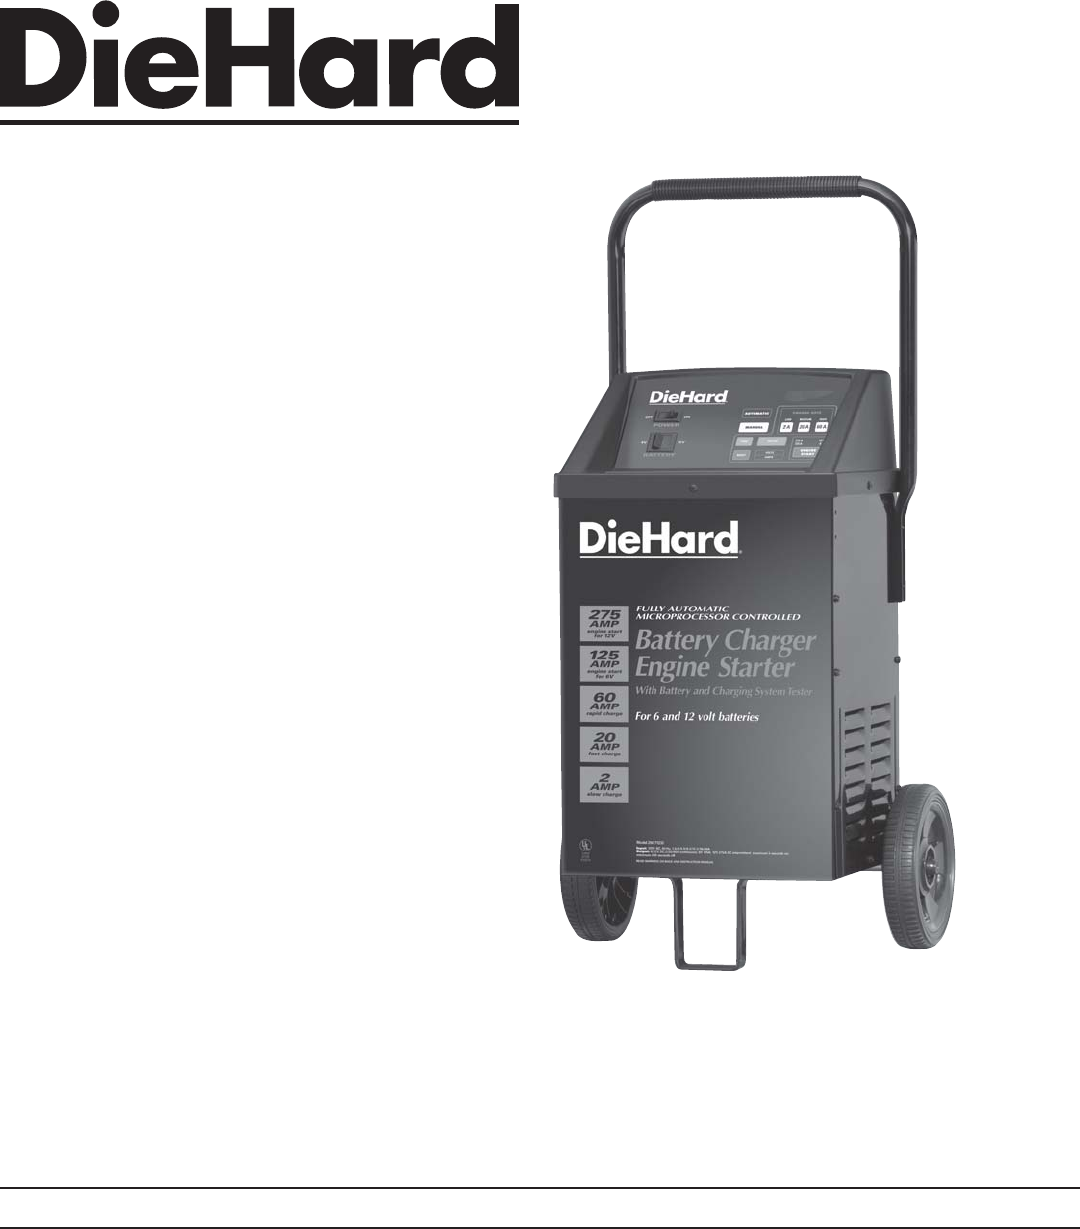 sears battery charger 200 71232 user guide manualsonline com rh powertool manualsonline com sears 10/2 manual battery charger sears manual battery charger for 12 volt